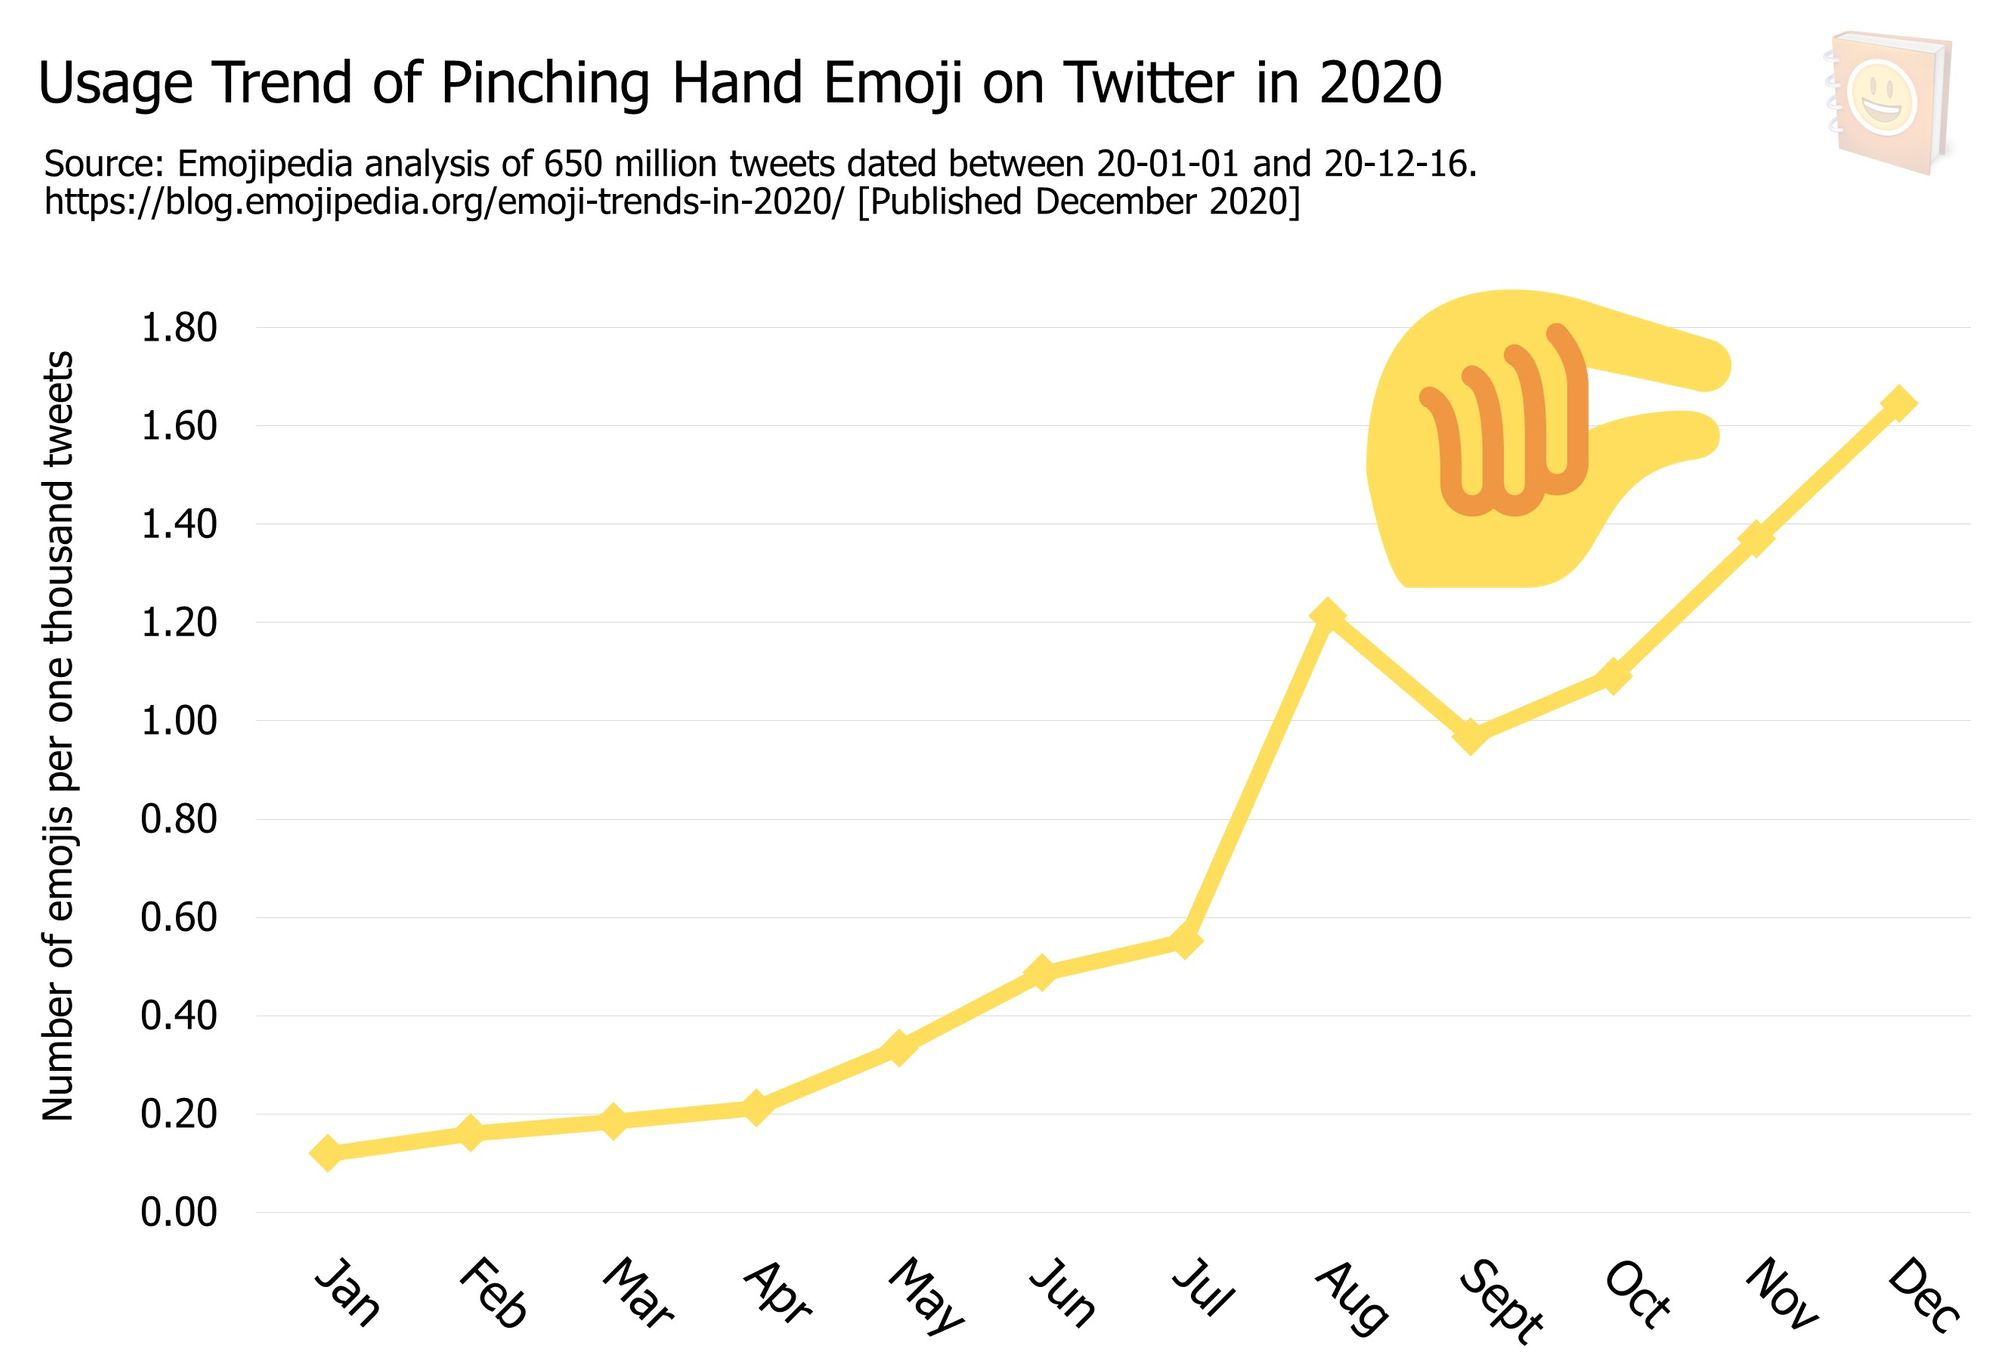 Emoji-Trends-In-2020---Usage-Trend-of-Pinching-Hand-Emoji-on-Twitter-in-2020